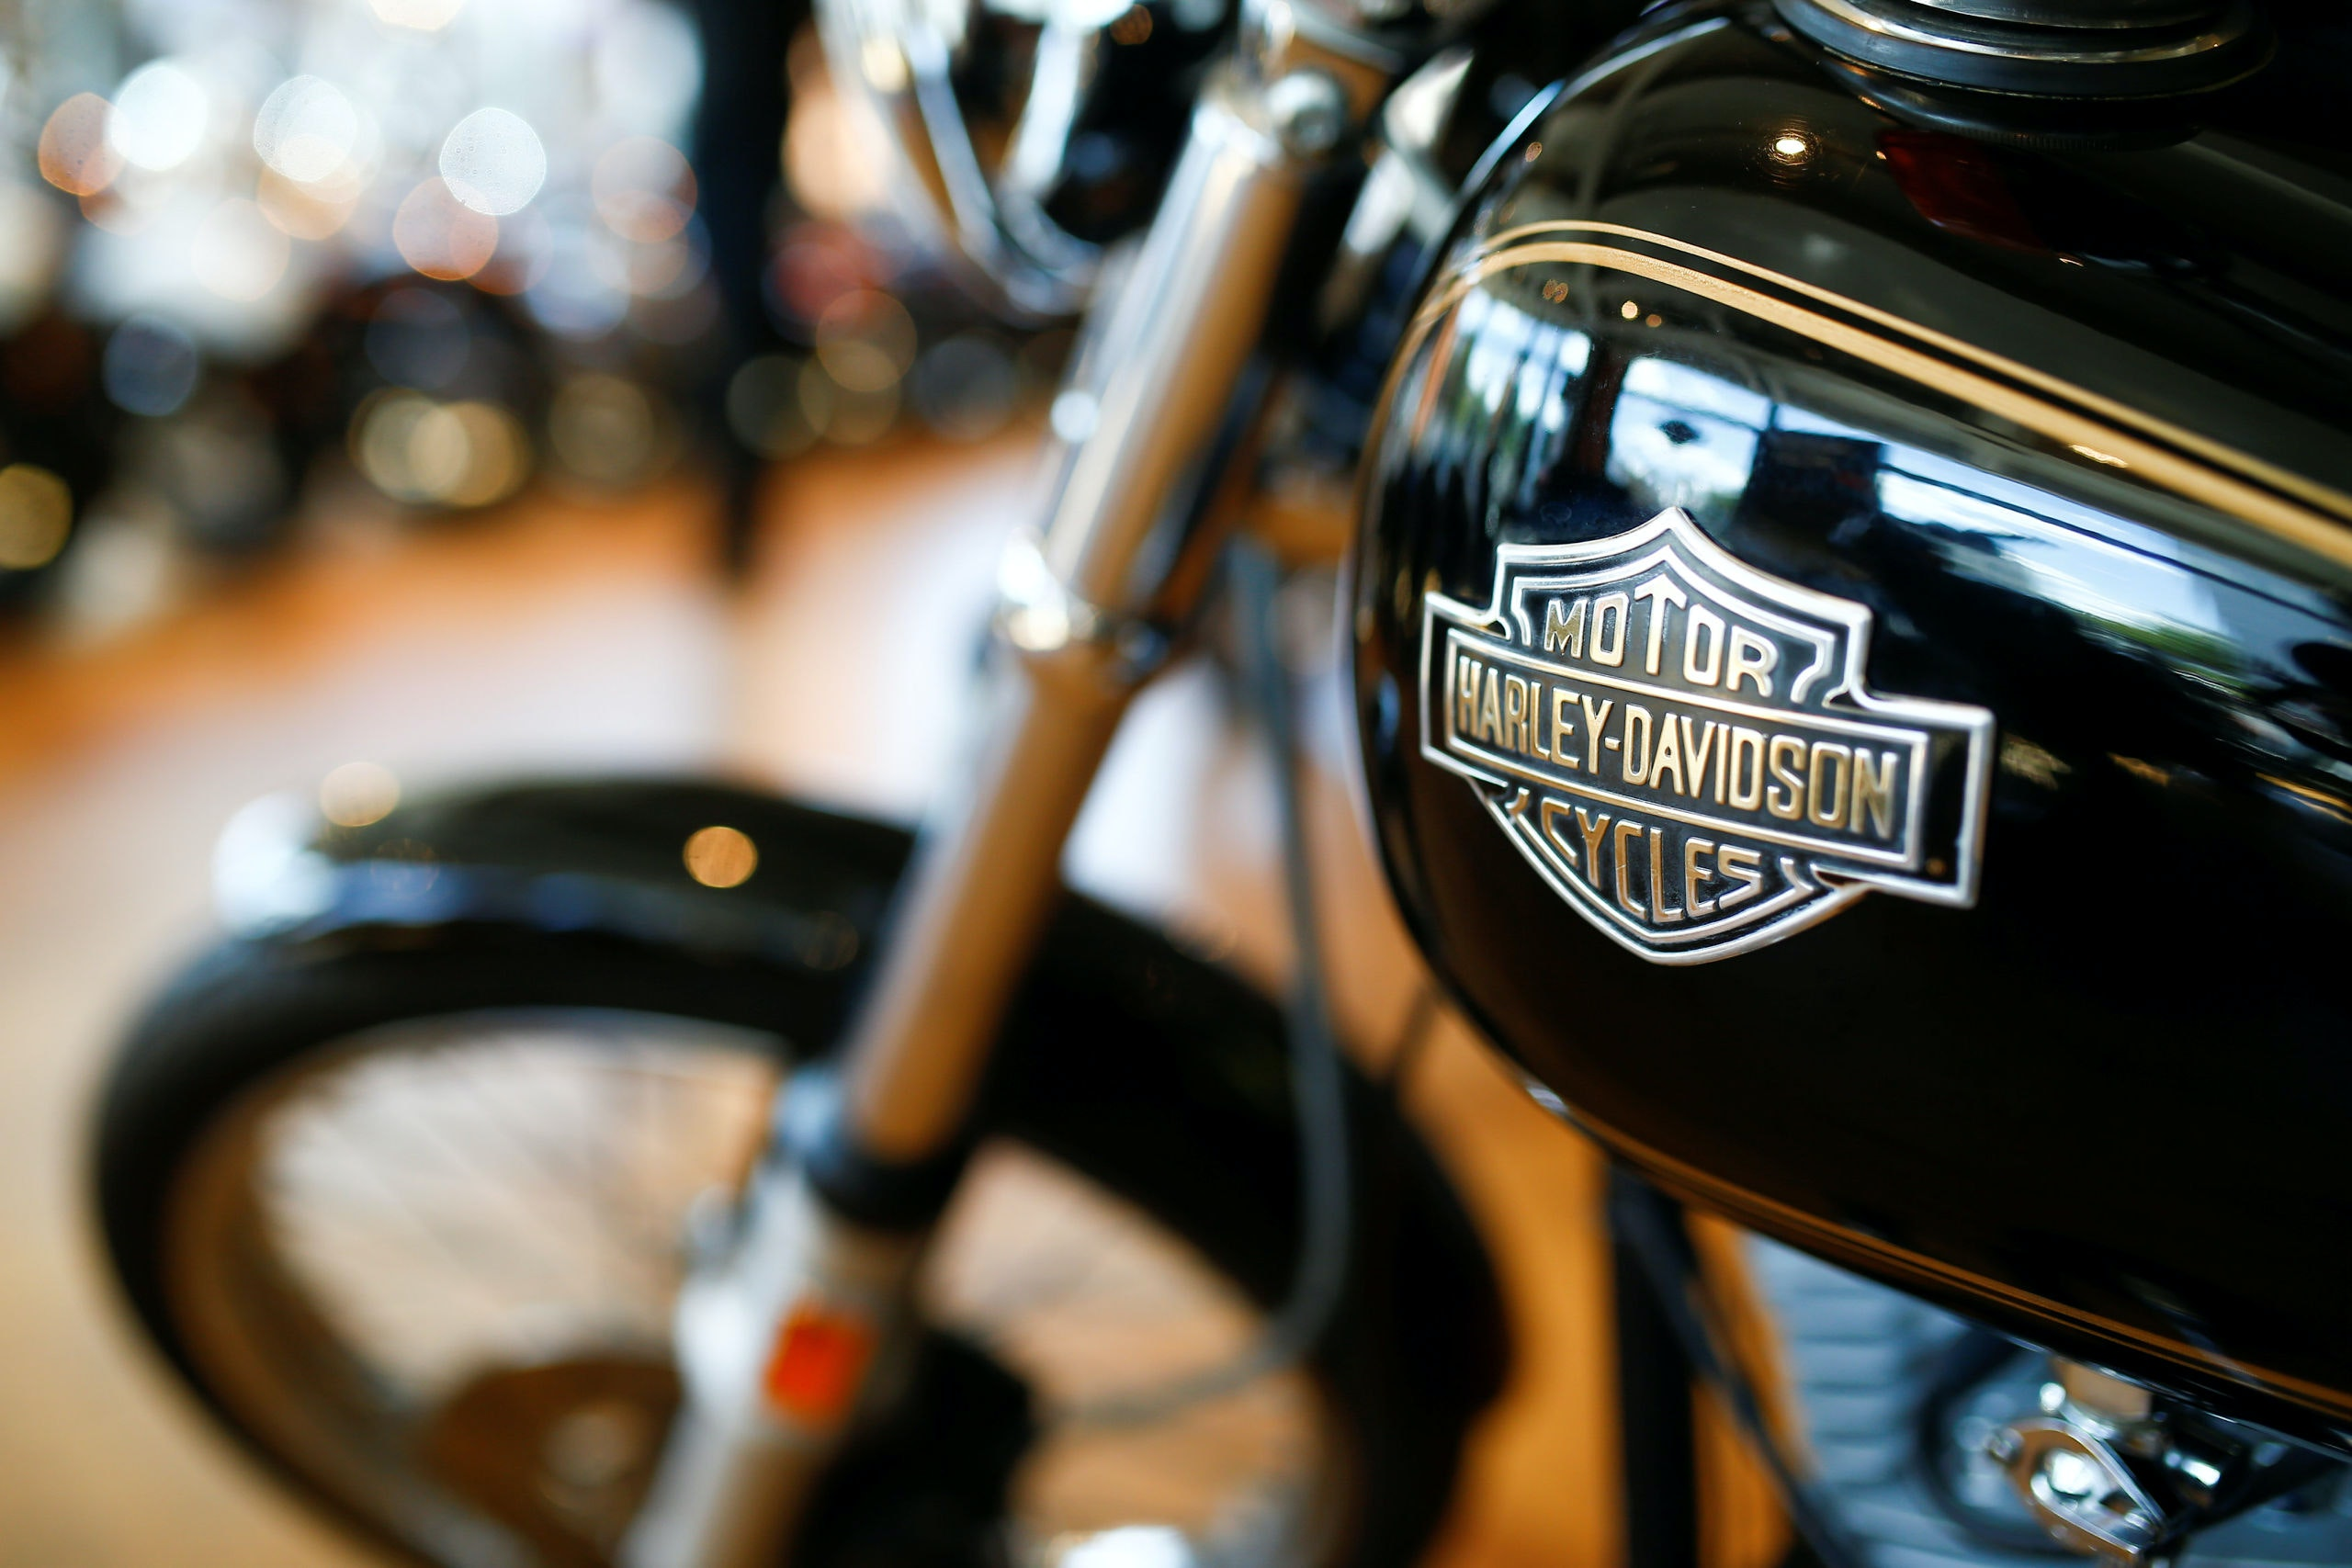 Harley Davidson motorcycles are displayed for sale at a showroom in London, Britain, June 22 2018. REUTERS/Henry Nicholls